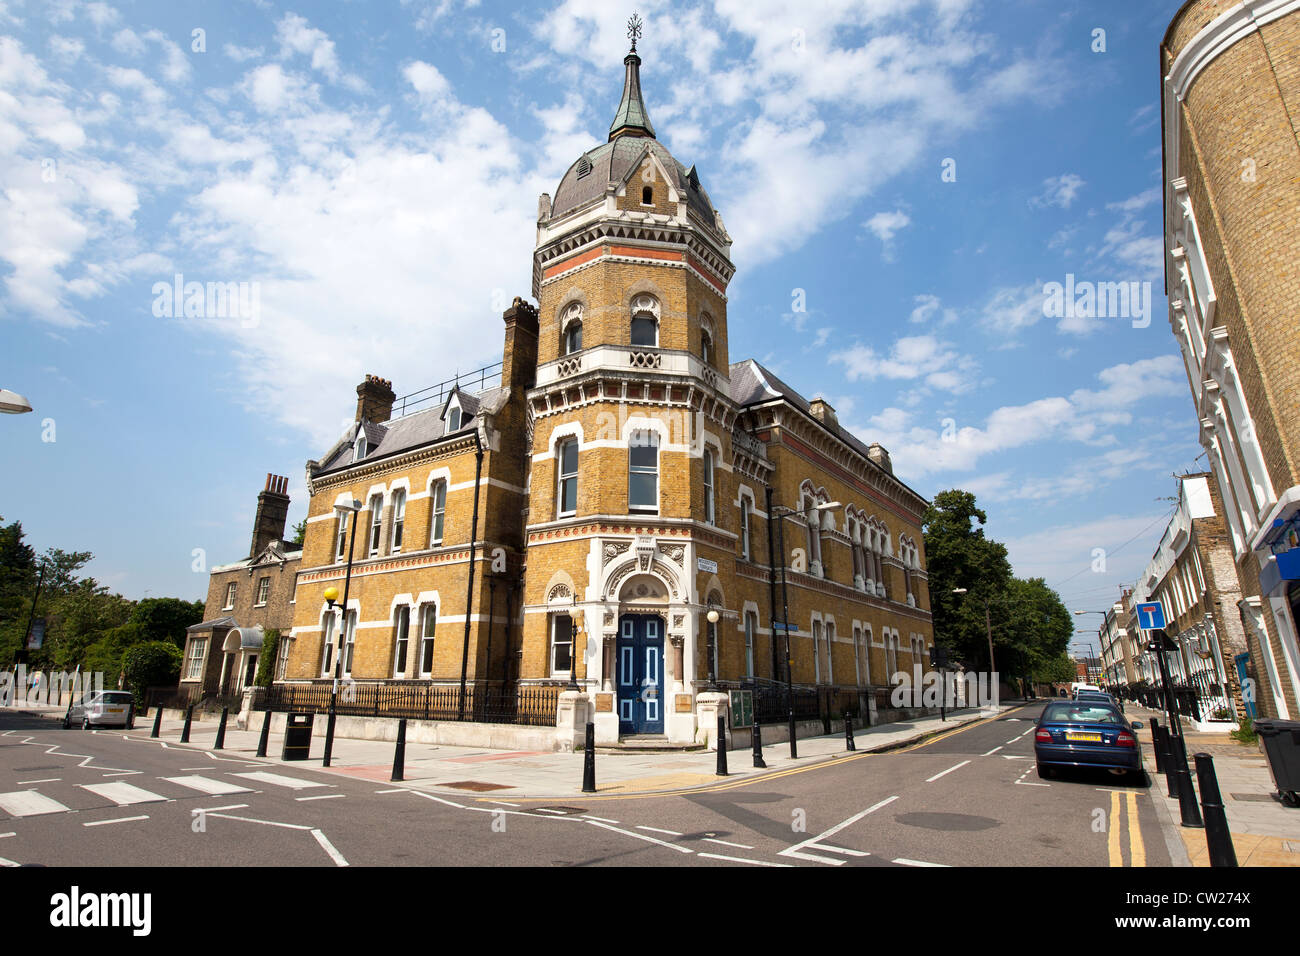 Former Board of Works building at the junction of Poplar High Street and Woodstock Terrace, Poplar, Tower Hamlets, - Stock Image